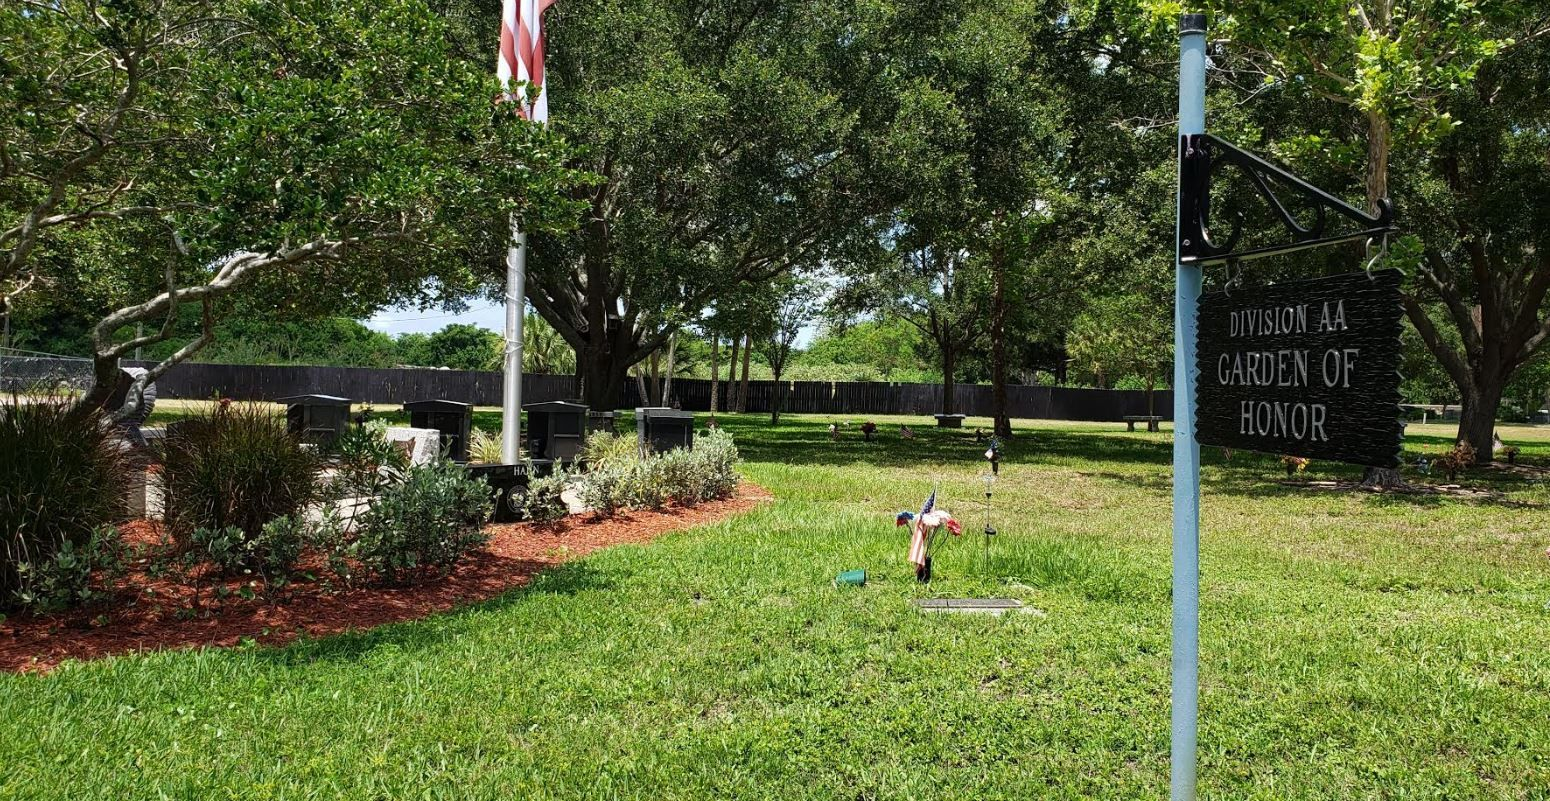 2 Grave Spaces For Sale 1500ea Memorial Park Cemetery St Petersburg Fl Gdn Of Honor The Cemetery Exchange Memorial Park Cemetery St Petersburg